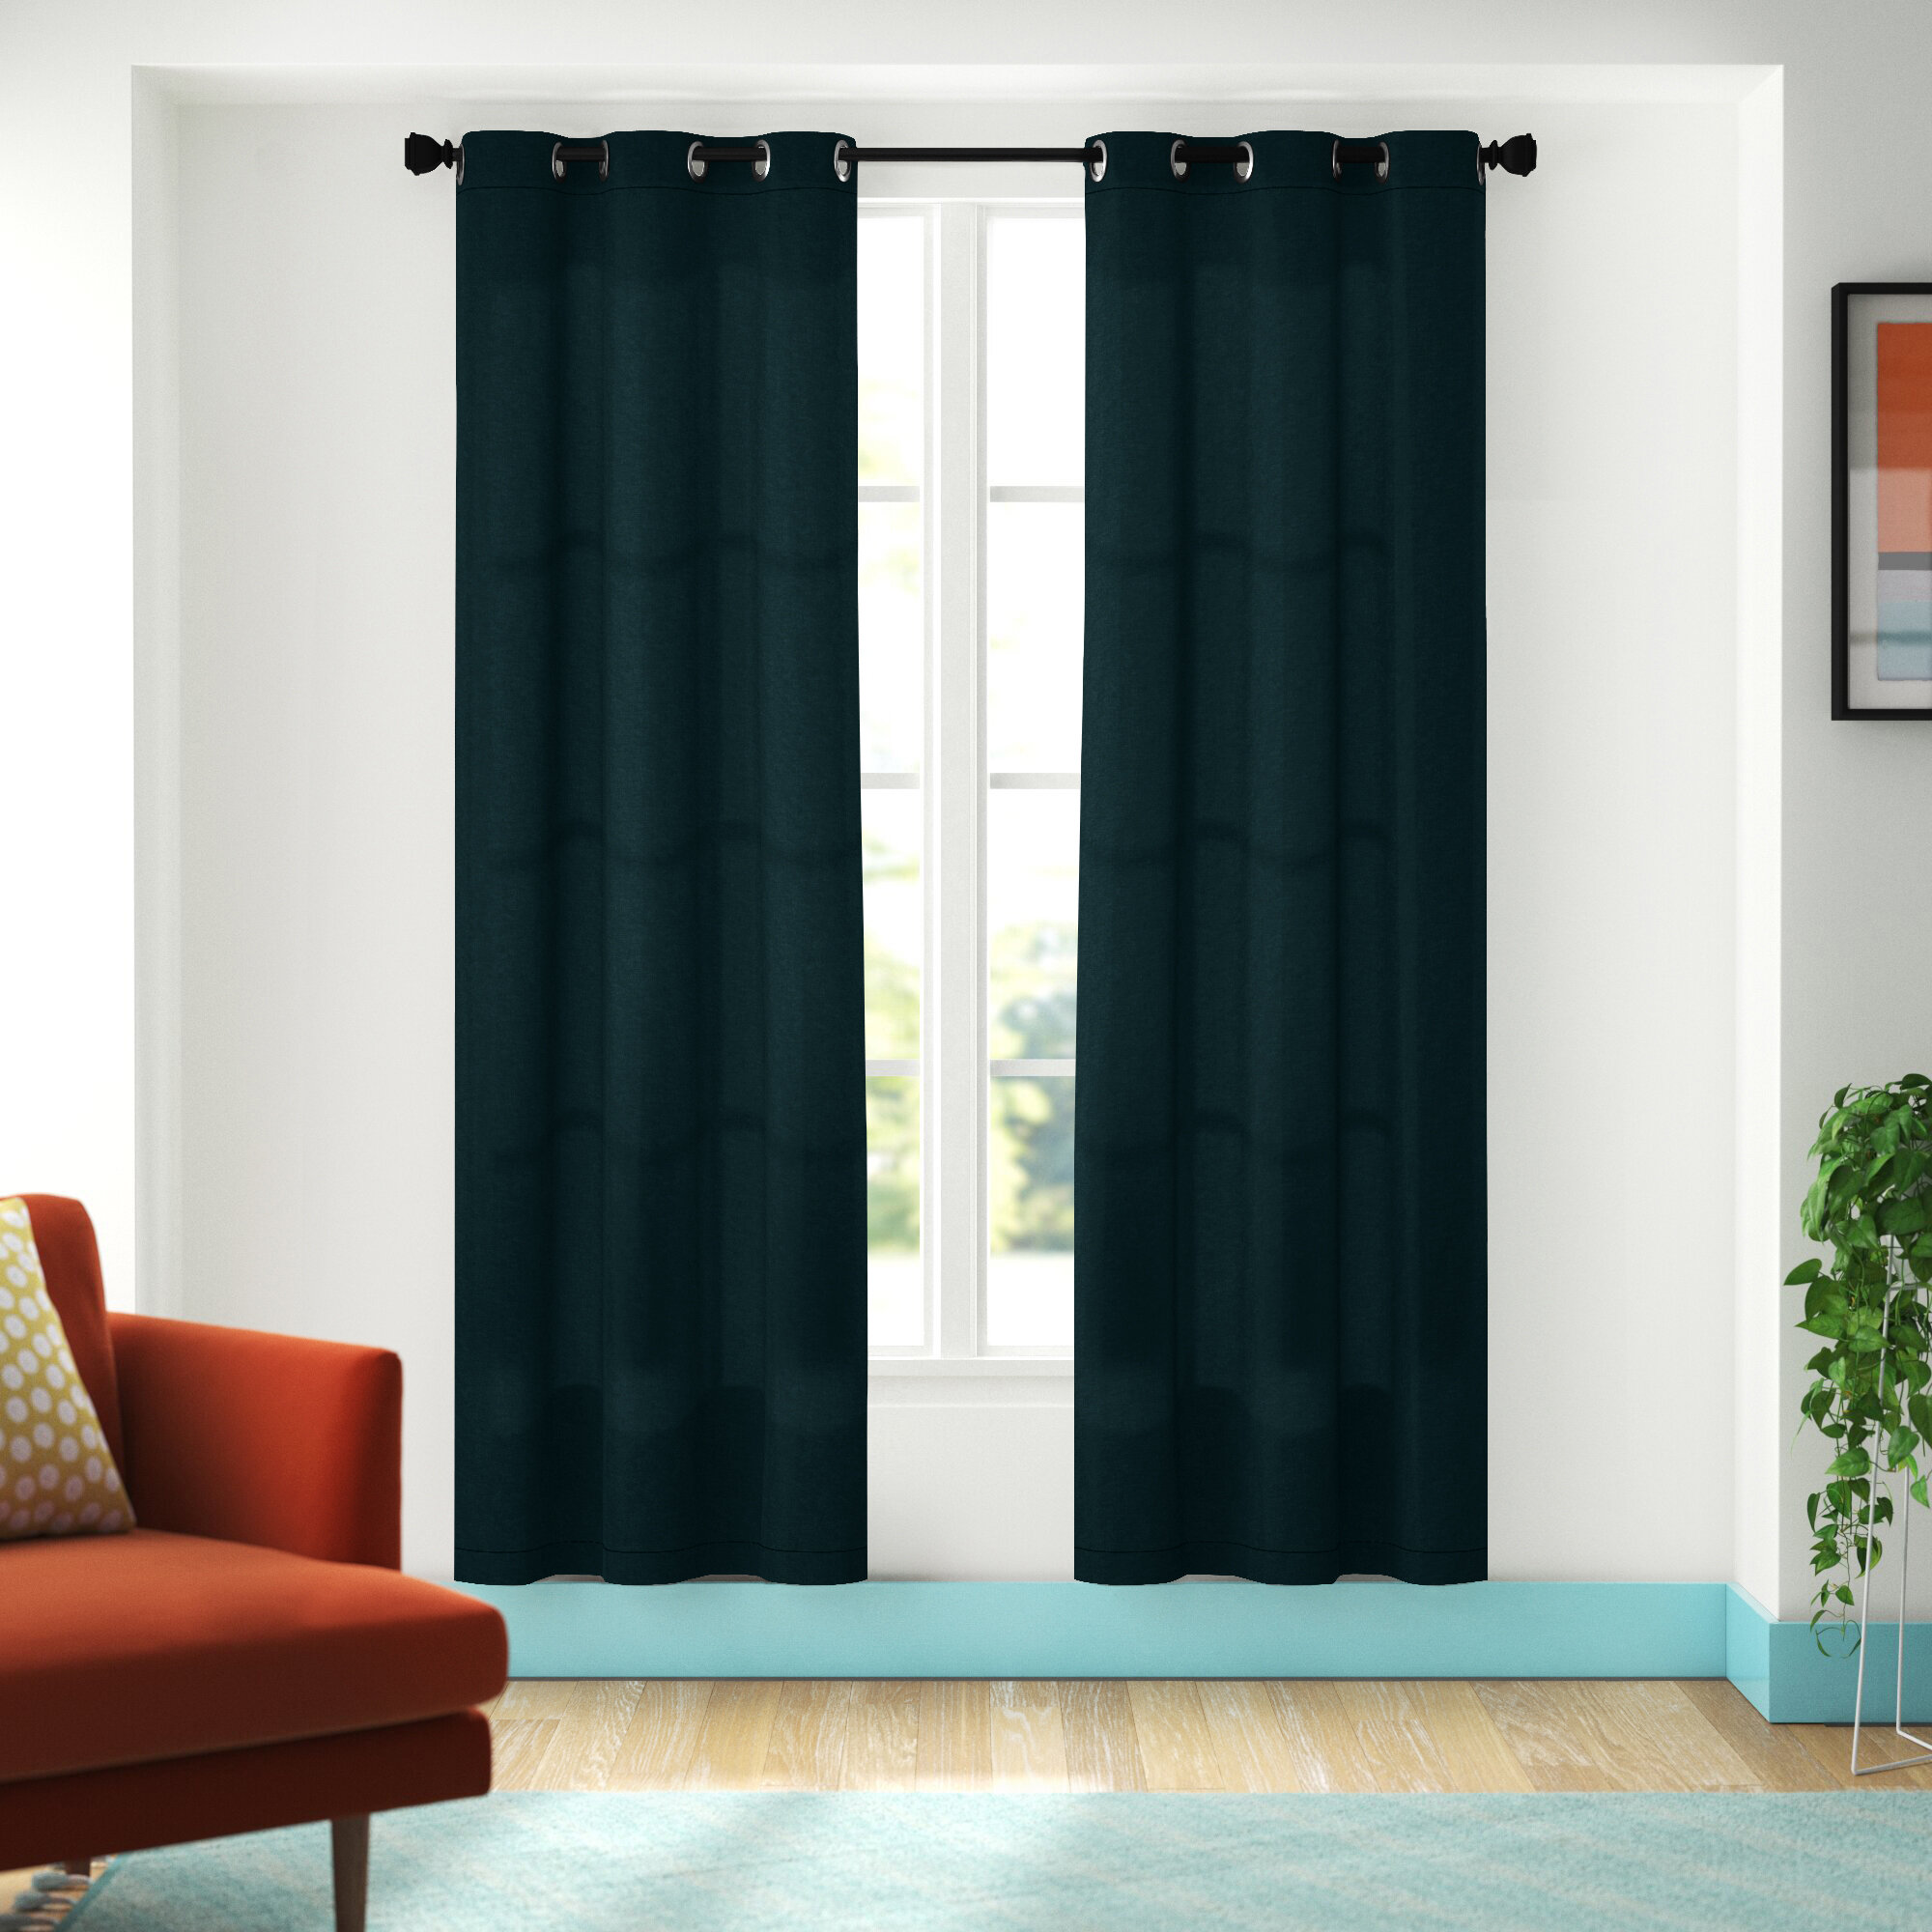 Bedroom Curtains Drapes Free Shipping Over 35 Wayfair